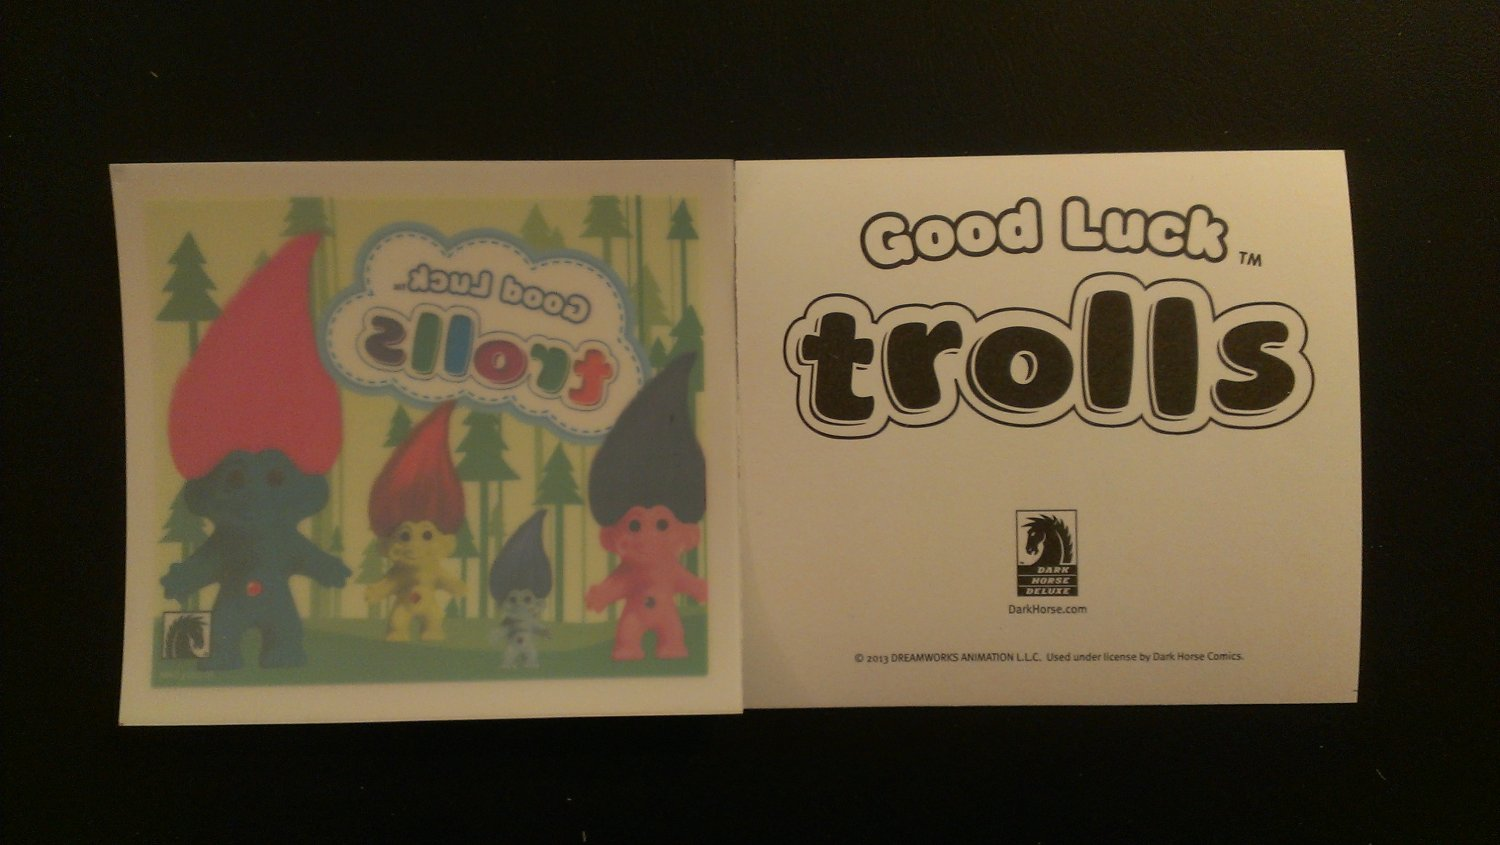 Good Luck Trolls Window Decal / Sticker NYCC 2013